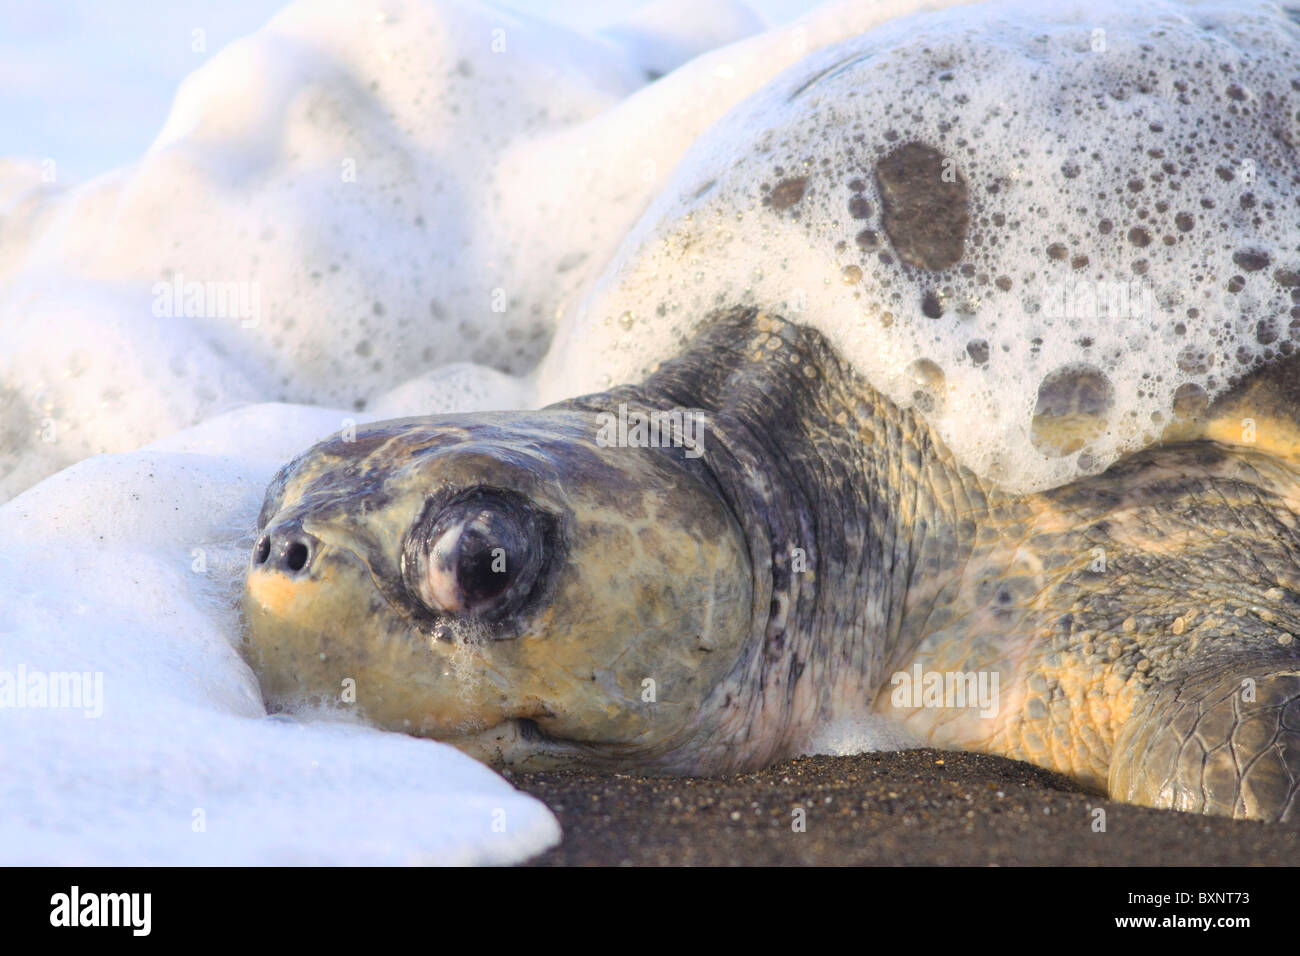 Olive Ridley Turtle emerges from ocean at Ostional to lay eggs during arribada - Stock Image